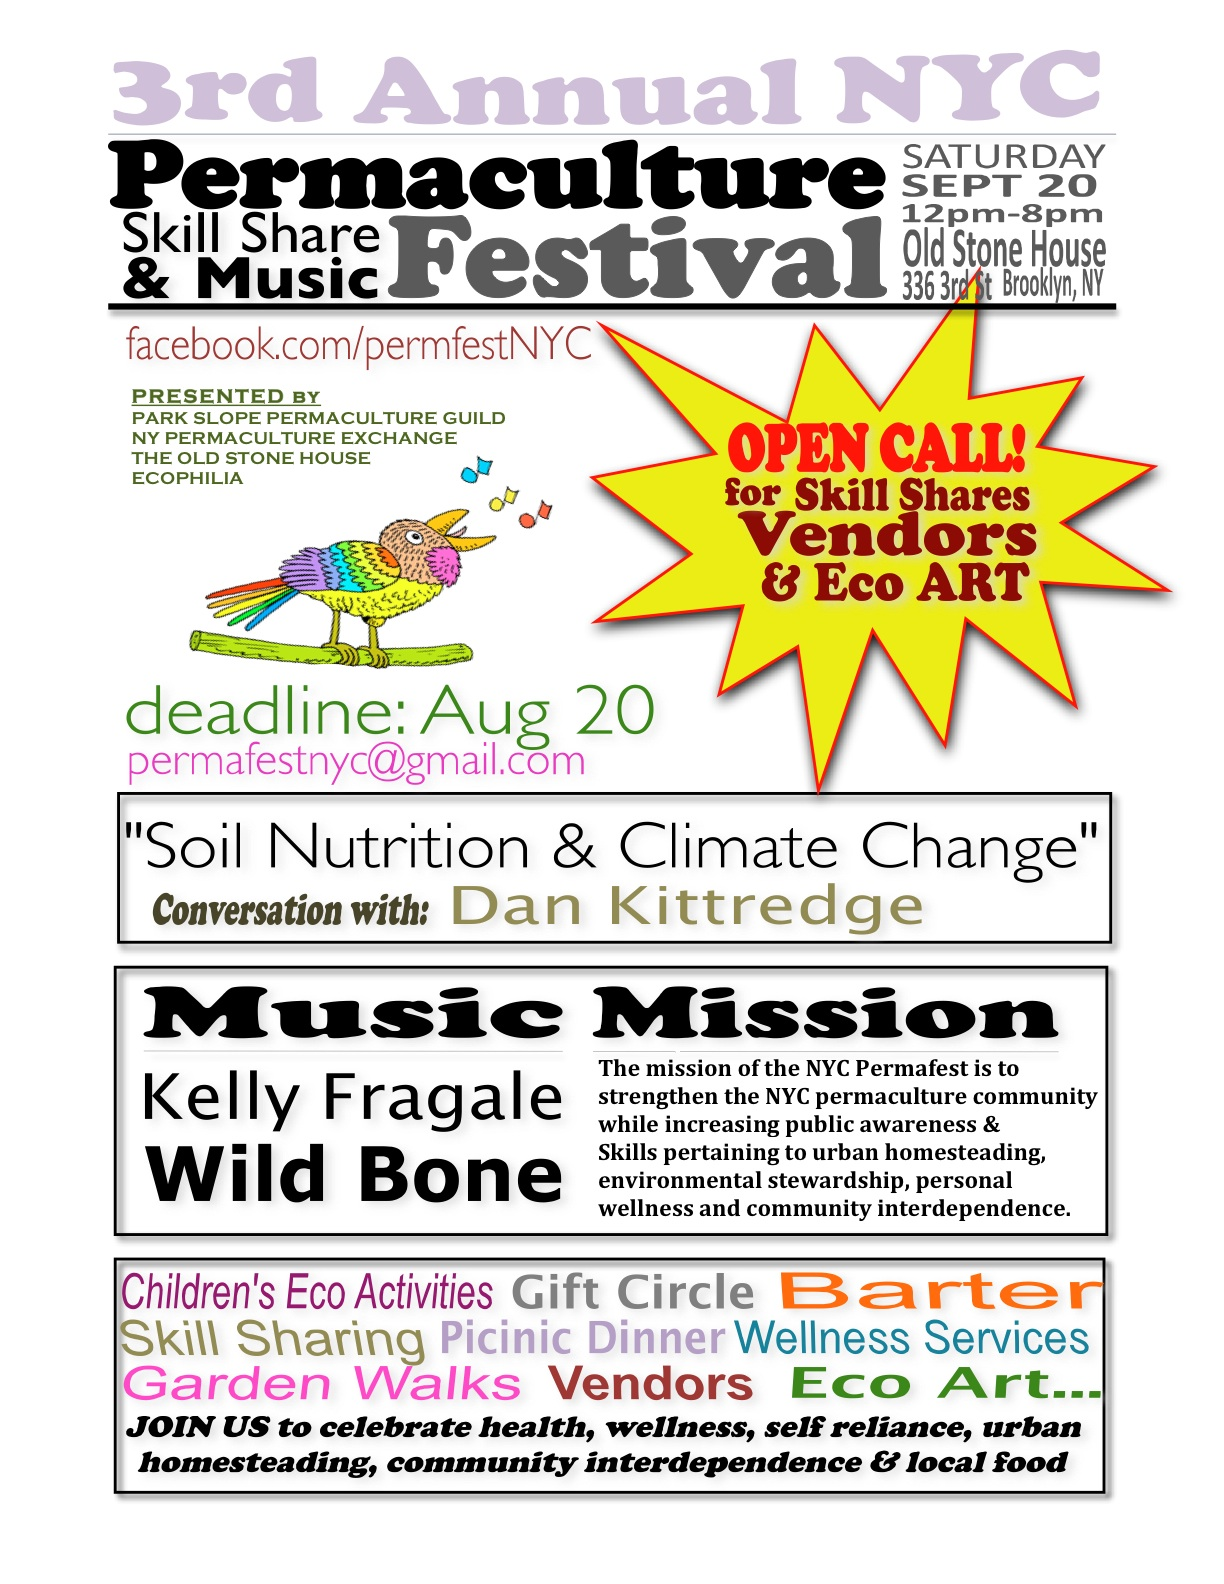 Permaculture Festival 2014